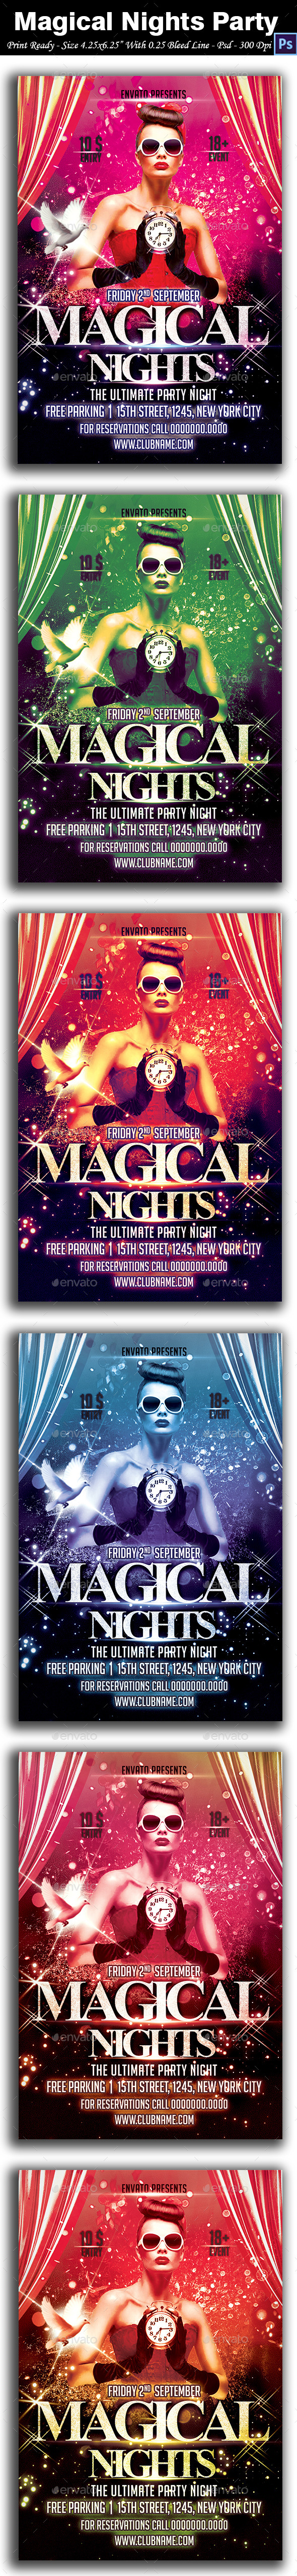 Magical Nights Party Flyer - Clubs & Parties Events